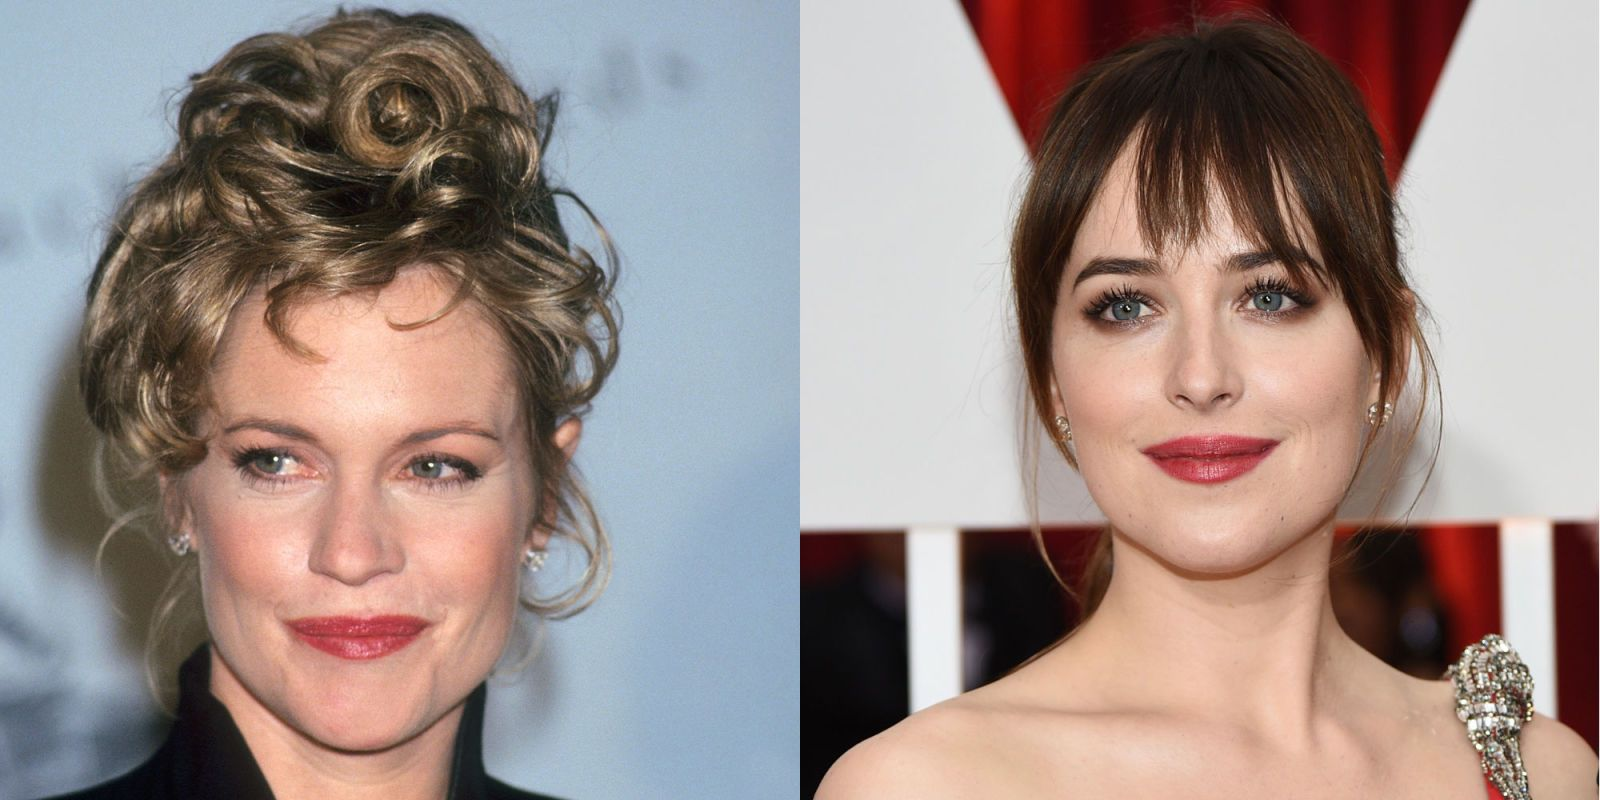 8 Celebrities Who Look Just Like Their Moms  - MarieClaire.com